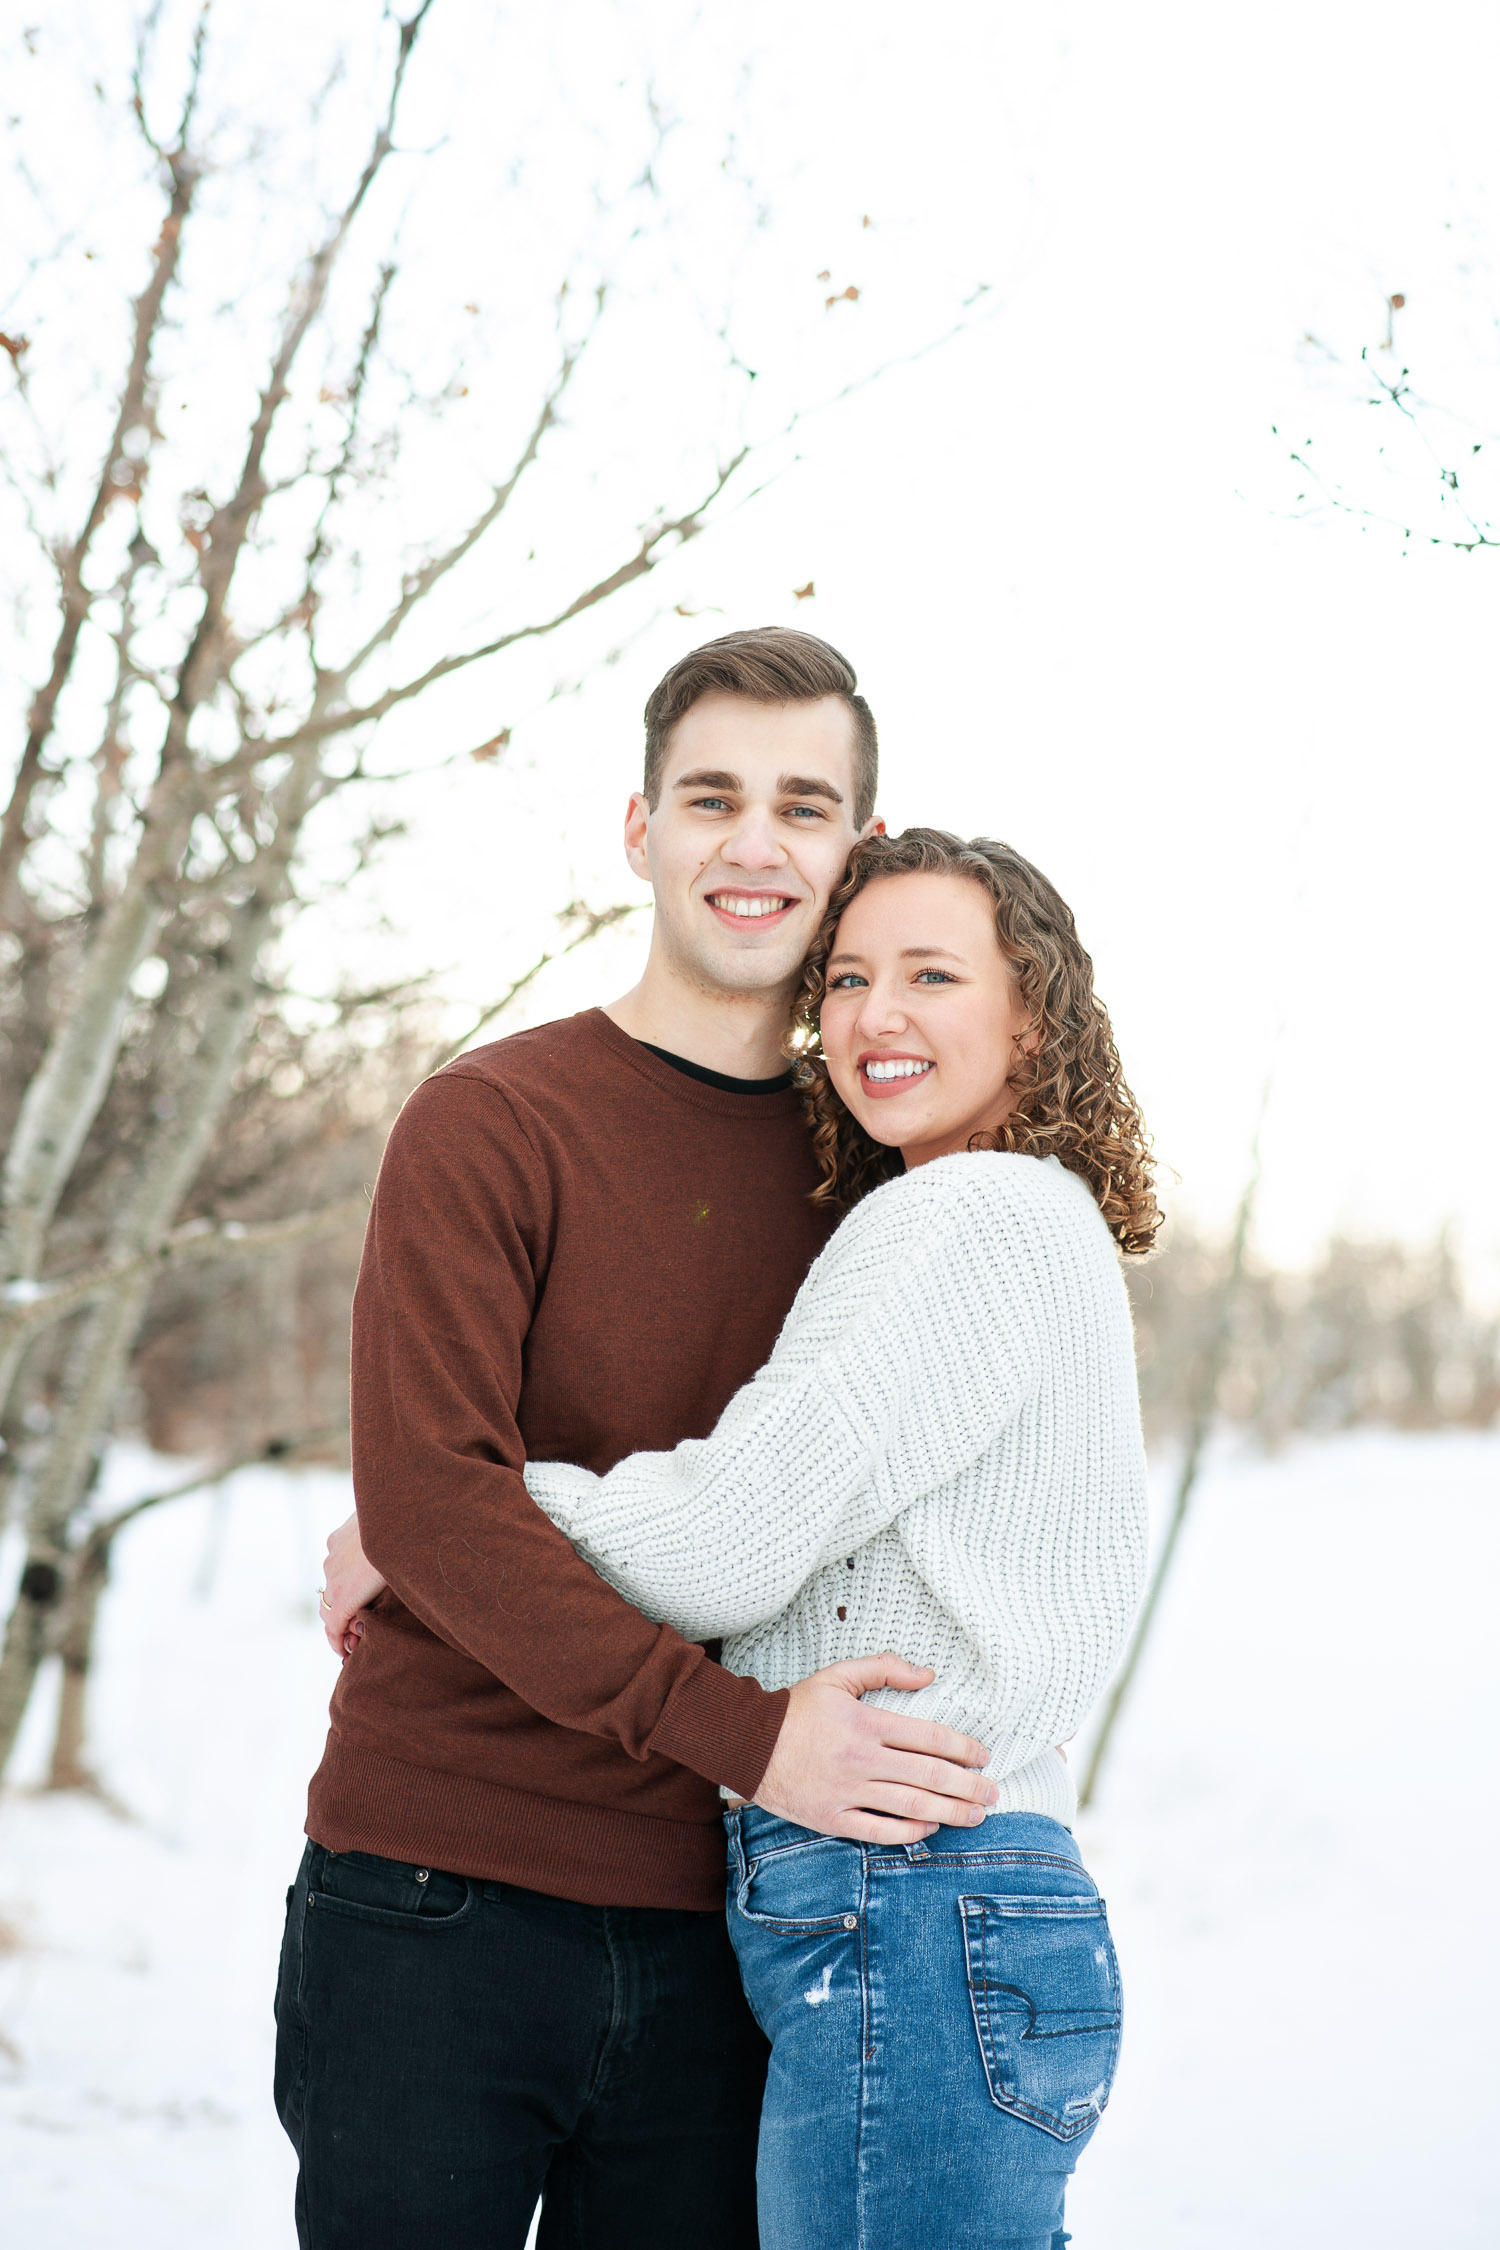 engagement session 101 with Tara Whittaker Photography